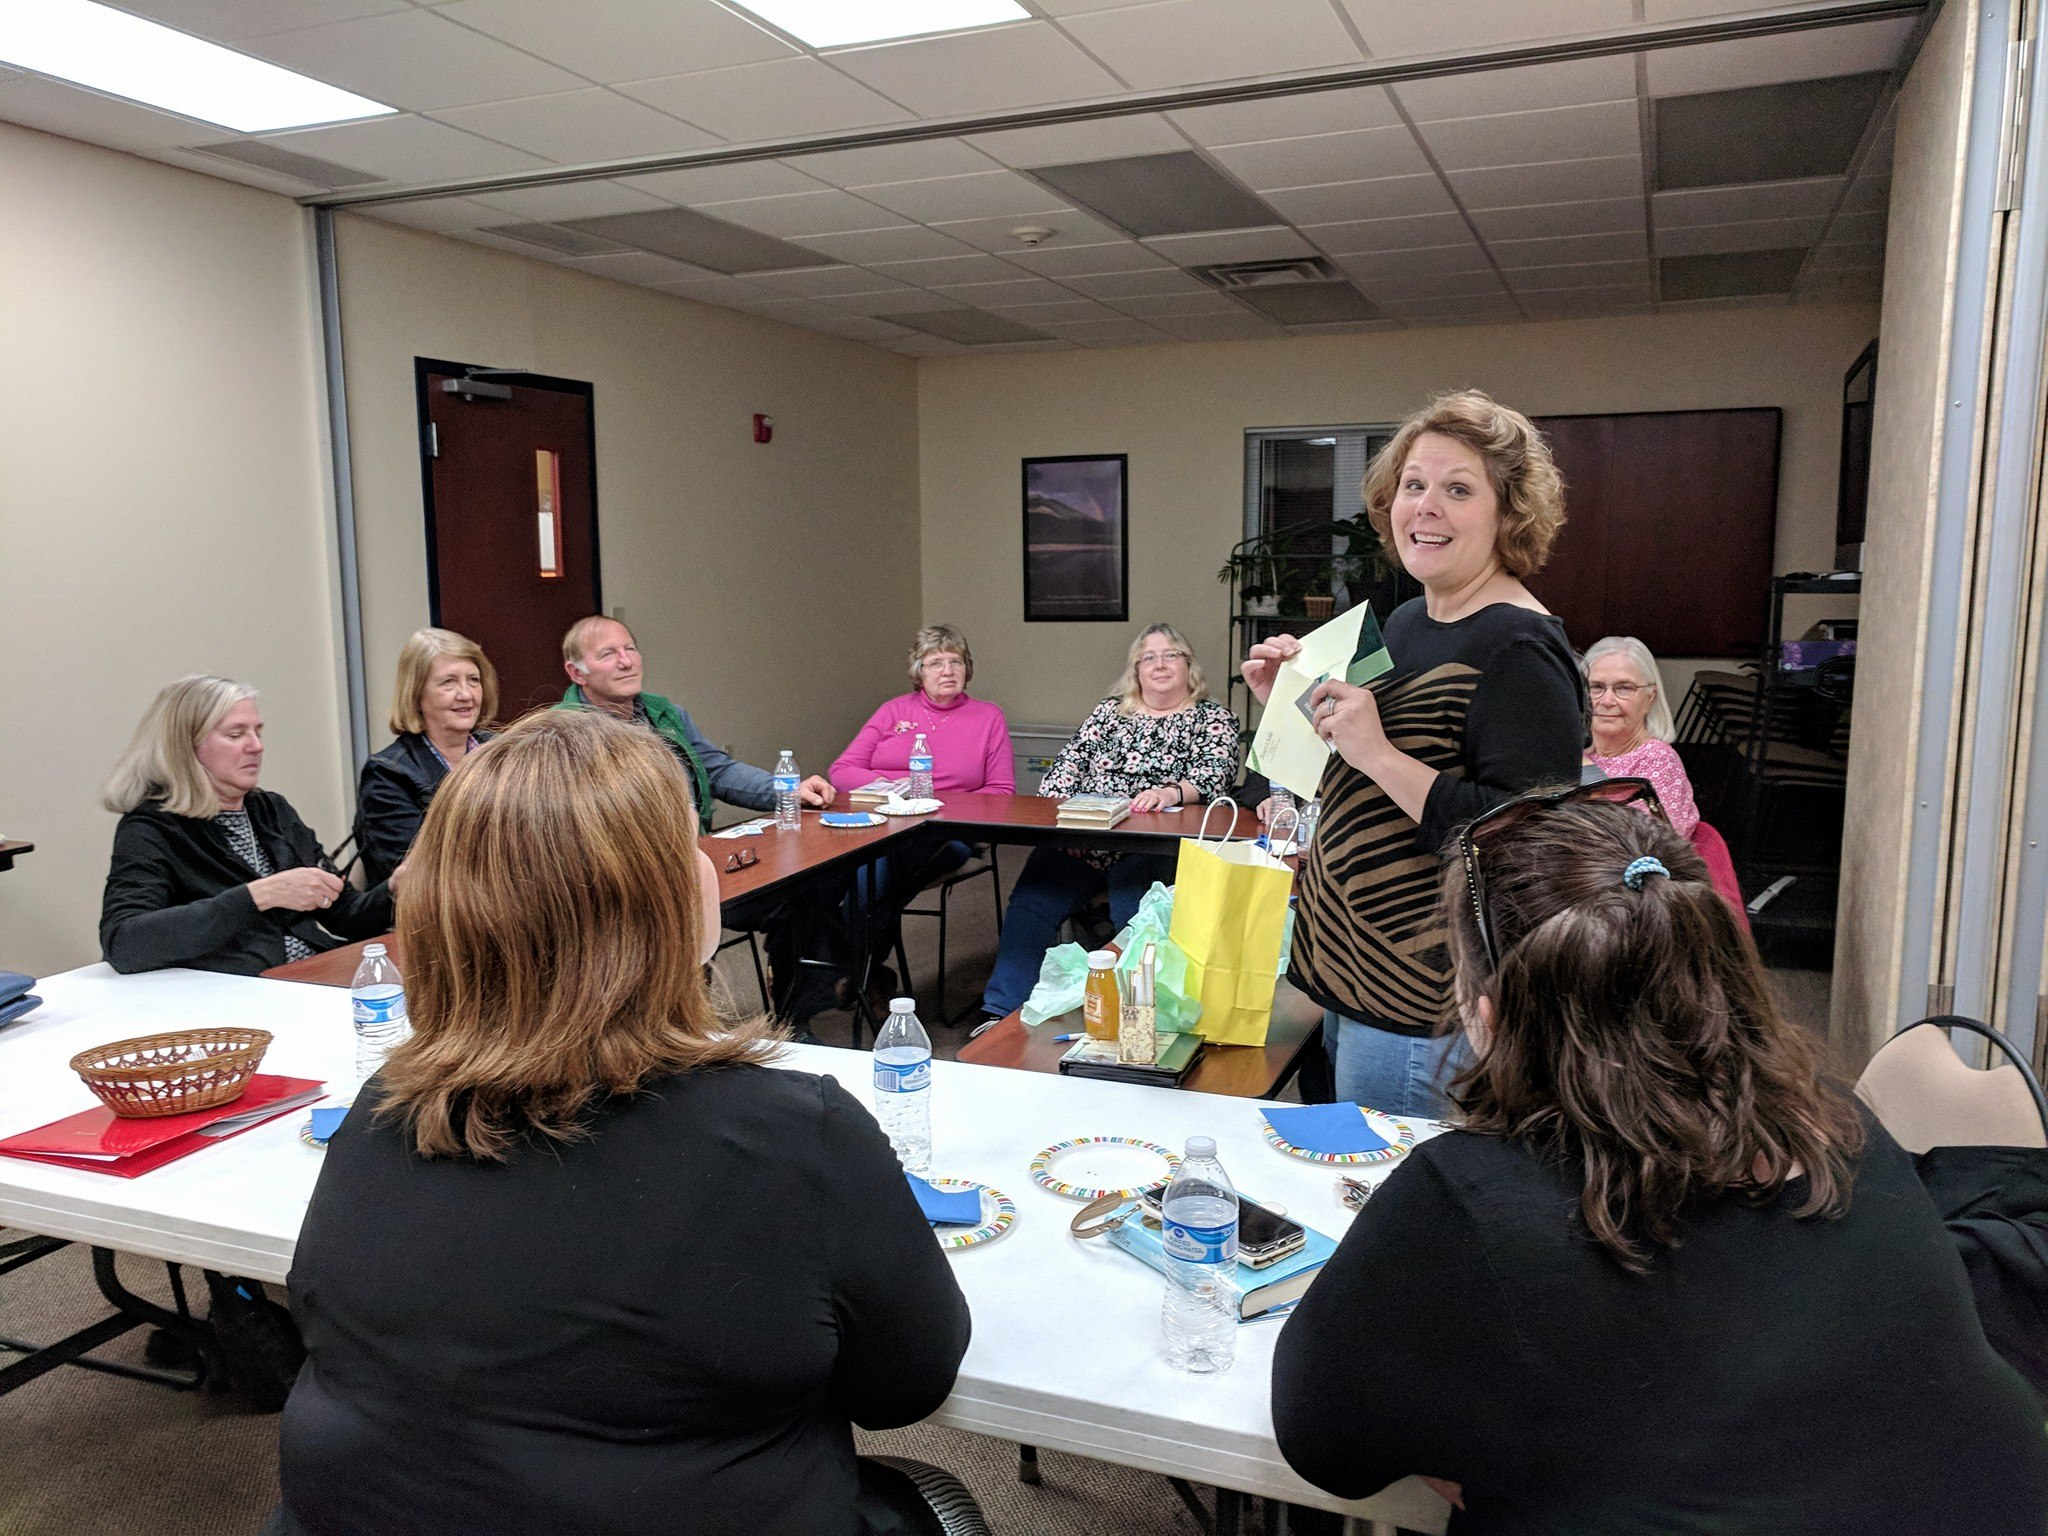 Carrie Alkire won the drawing at April's 'Around Town' Book Club meeting.  There were 12 members present for a fun discussion.